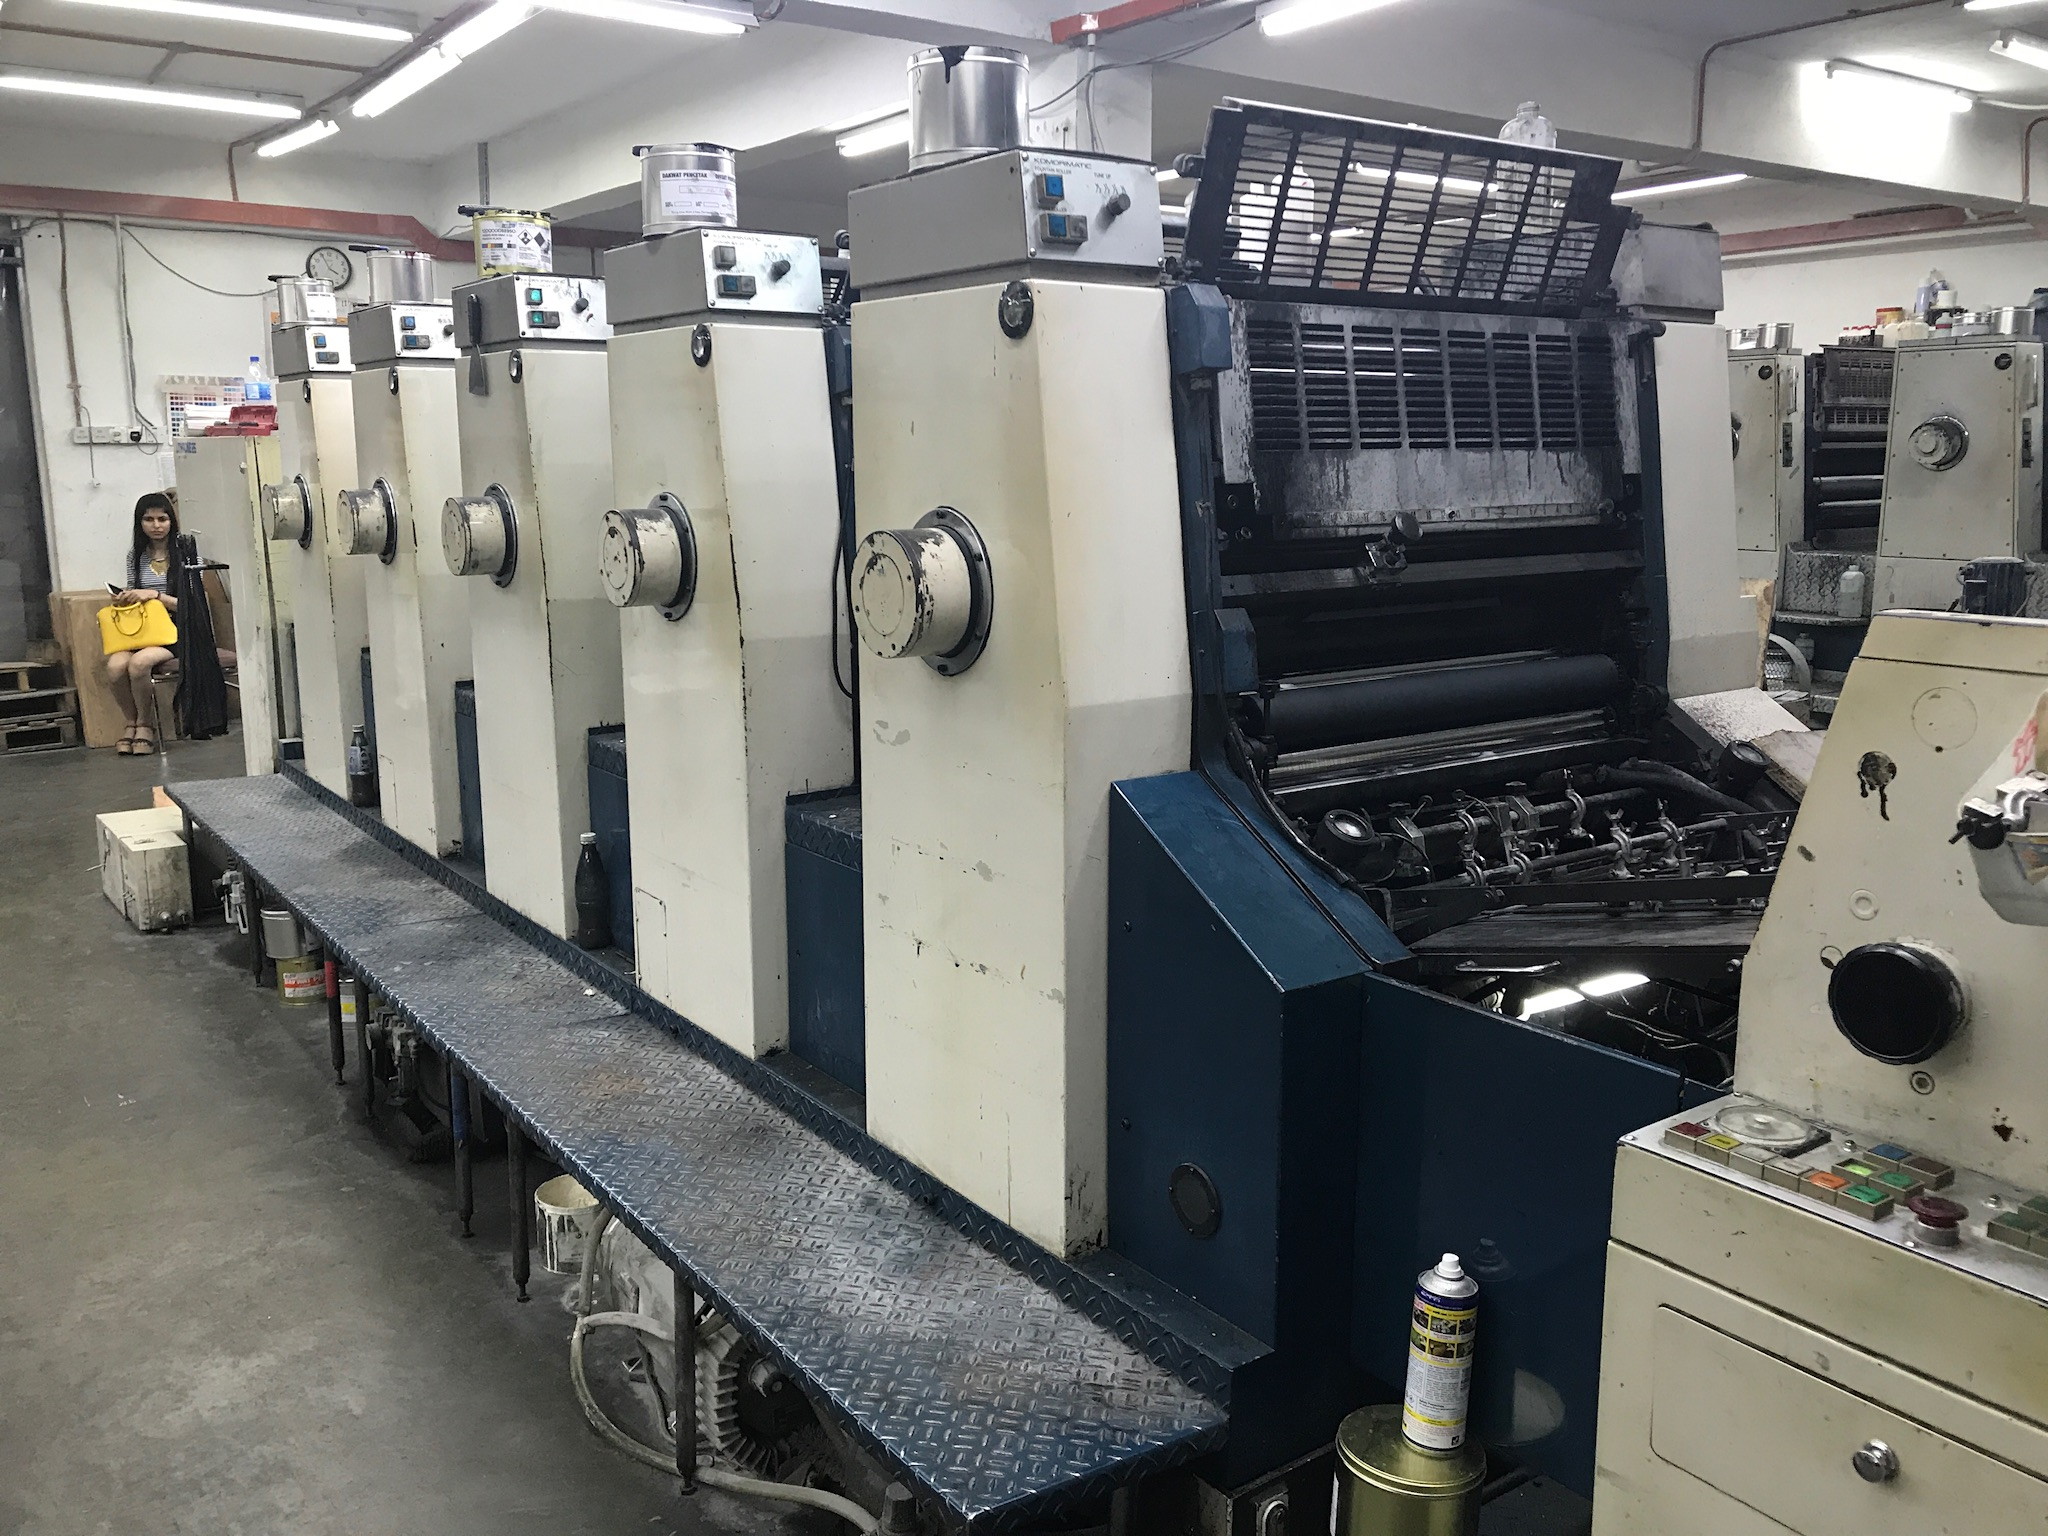 Five Colour Offset Printing Machine Komori L 532 Suppliers in Dindori